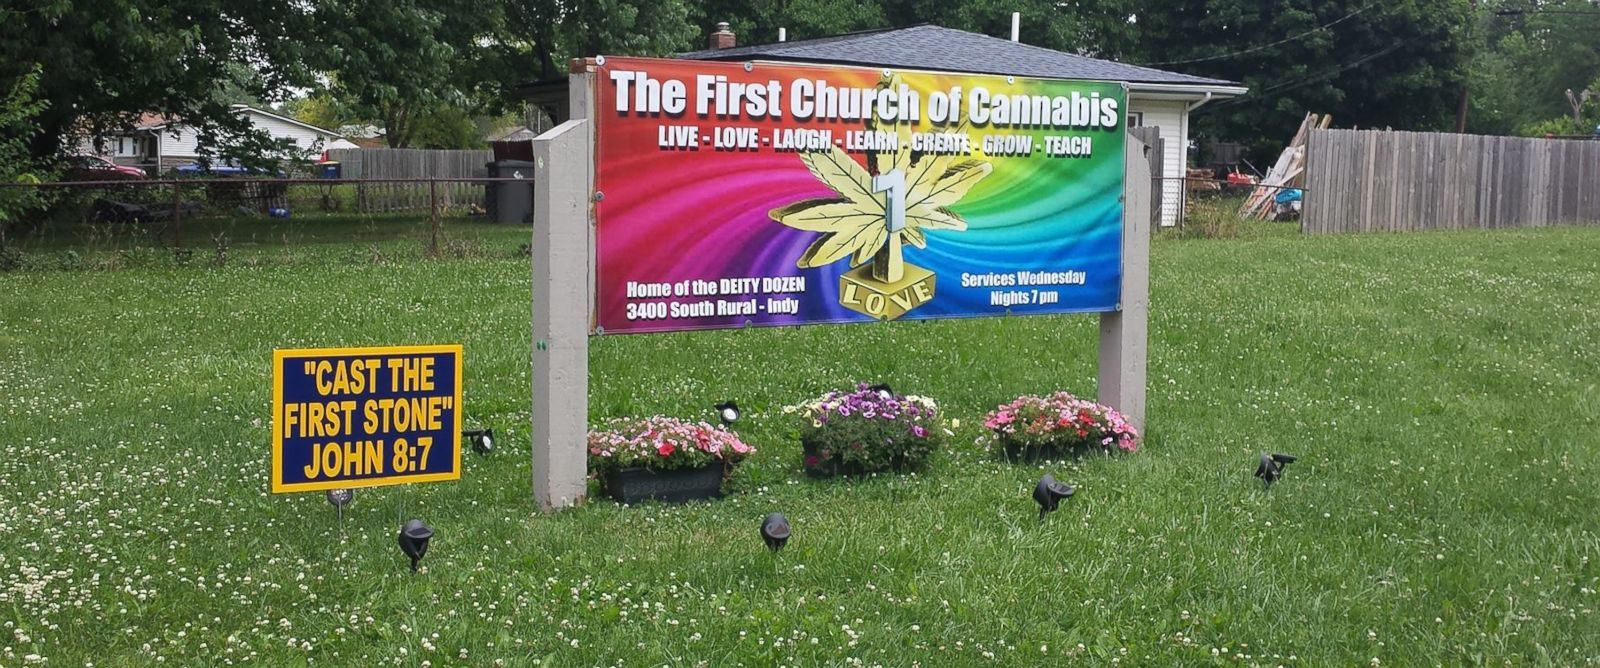 "PHOTO: The First Church of Cannabis, located in Indiana, treats the flowering herb as a sacrament. Seen here, a photo of a sign advertising services was posted on the Facebook page for ""The First Church of Cannabis"" on June 14, 2015."